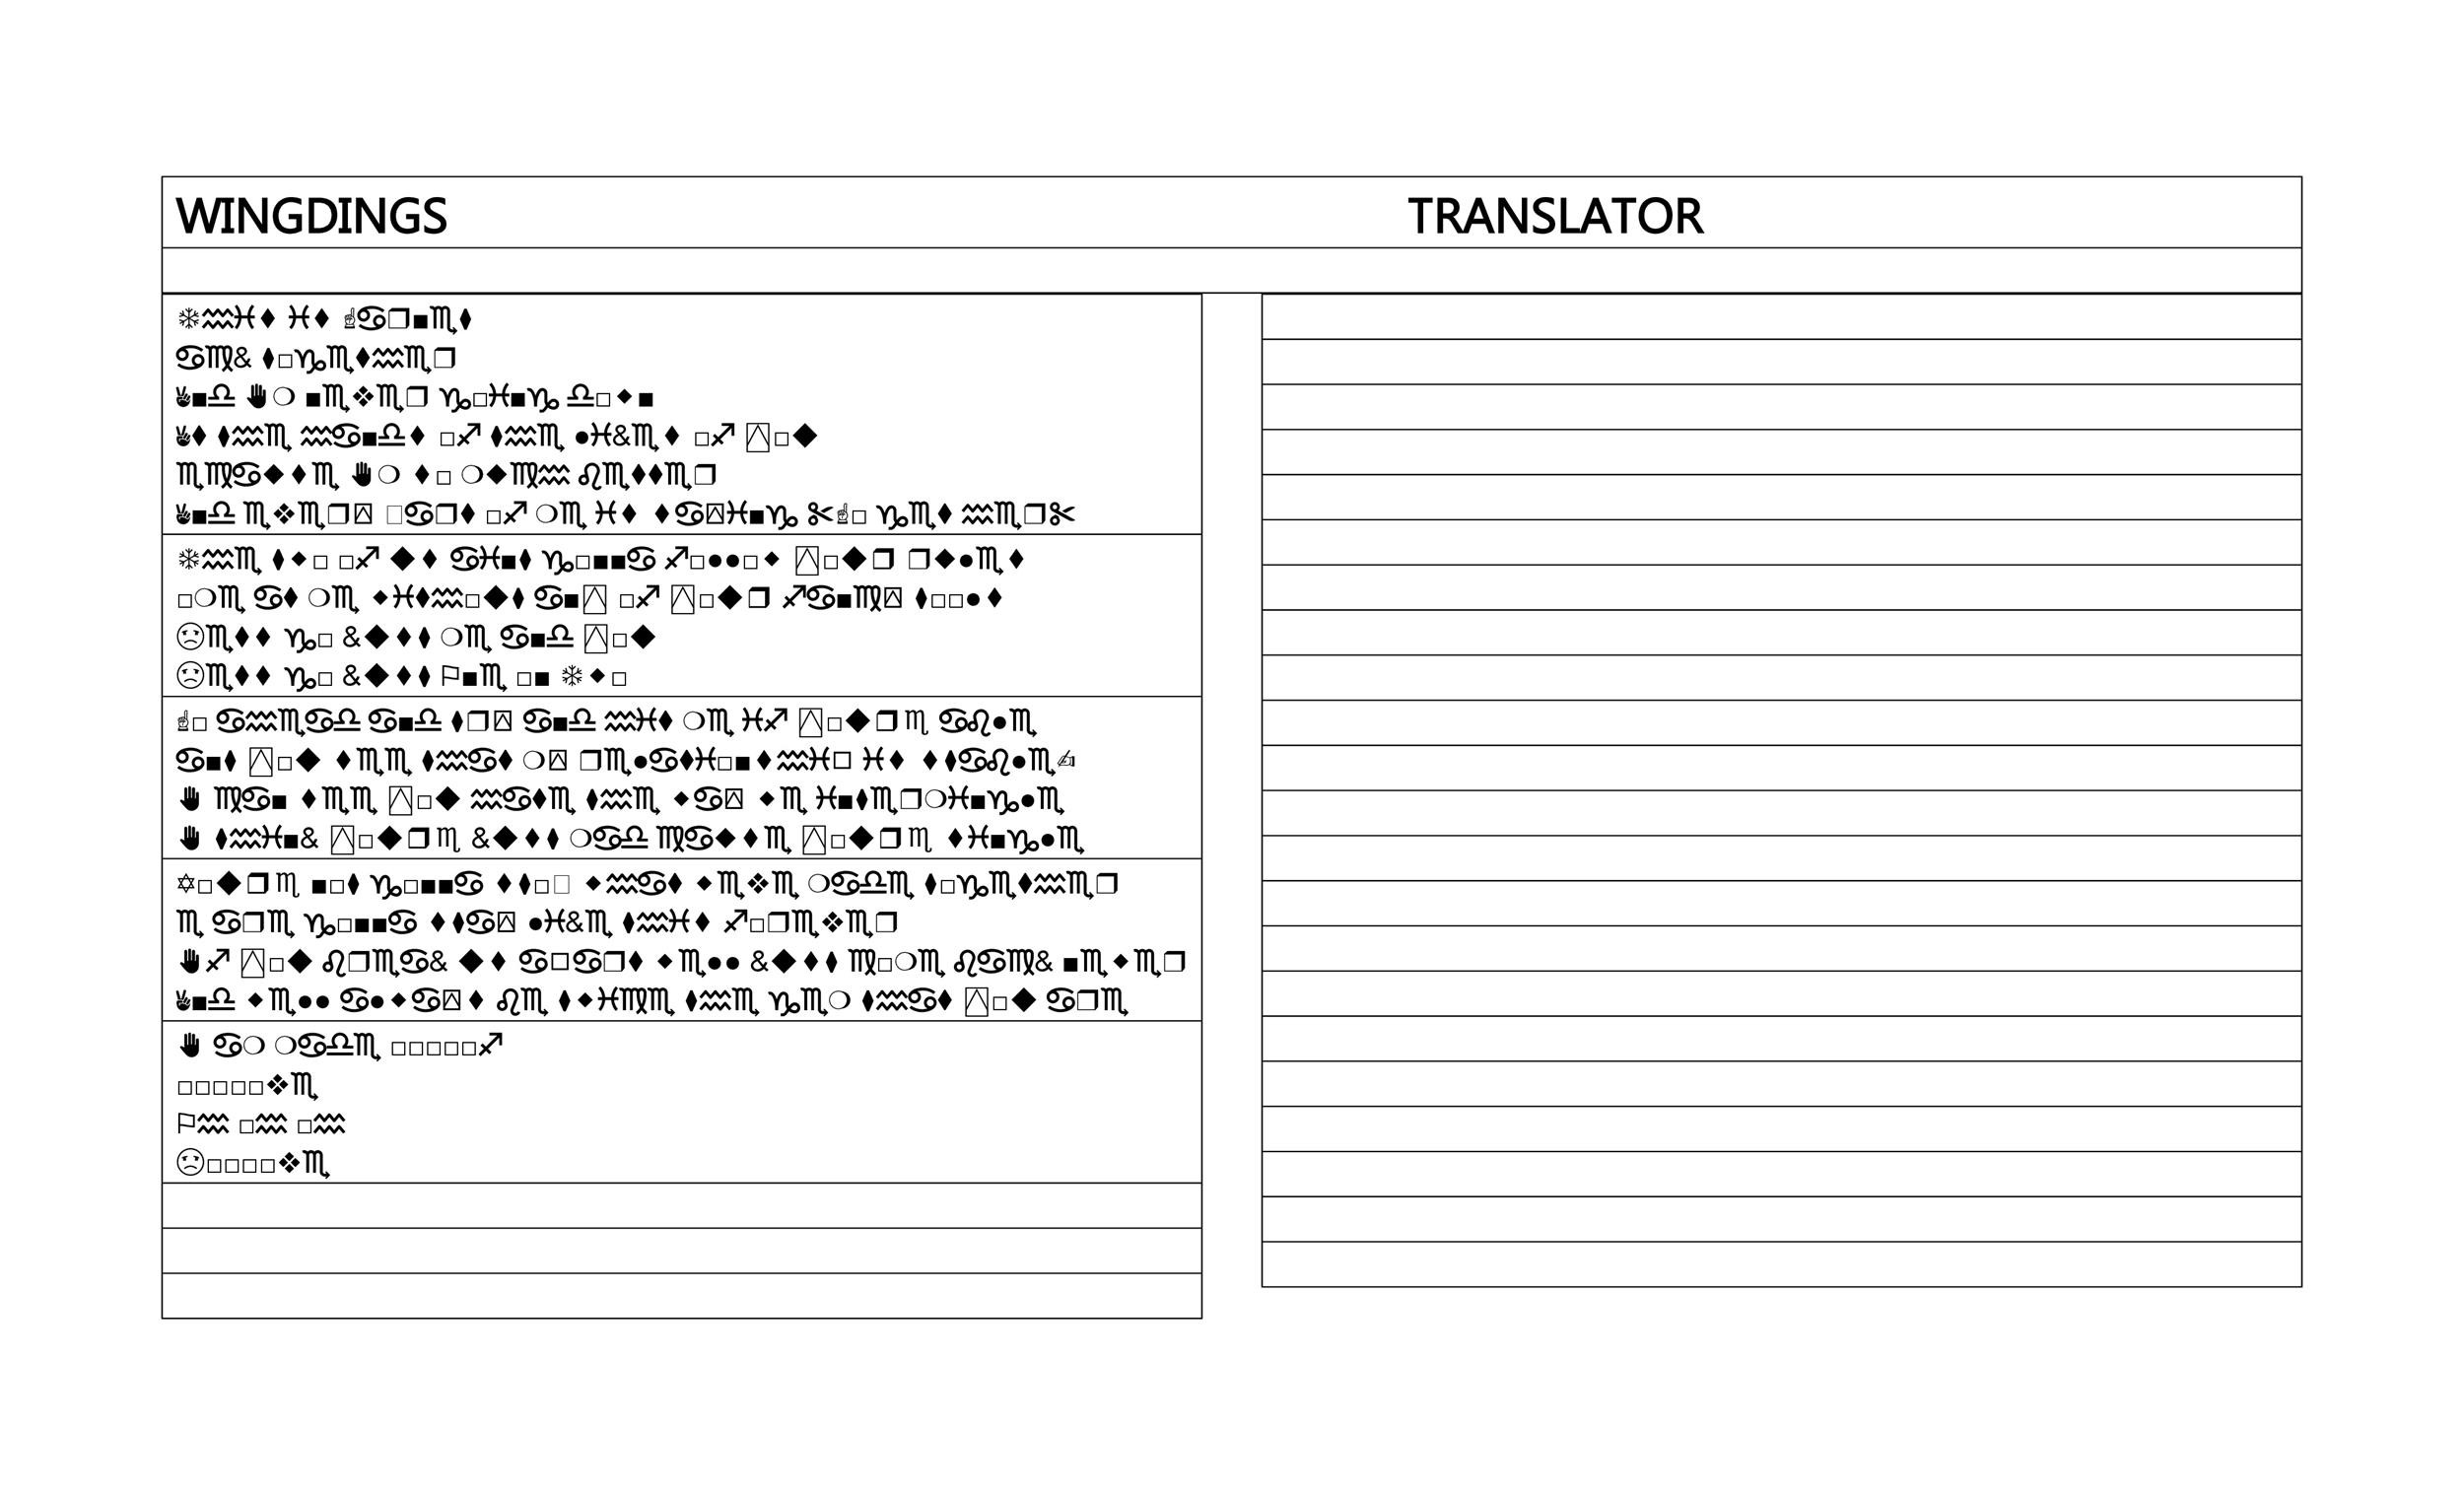 Free wingdings translator template 21